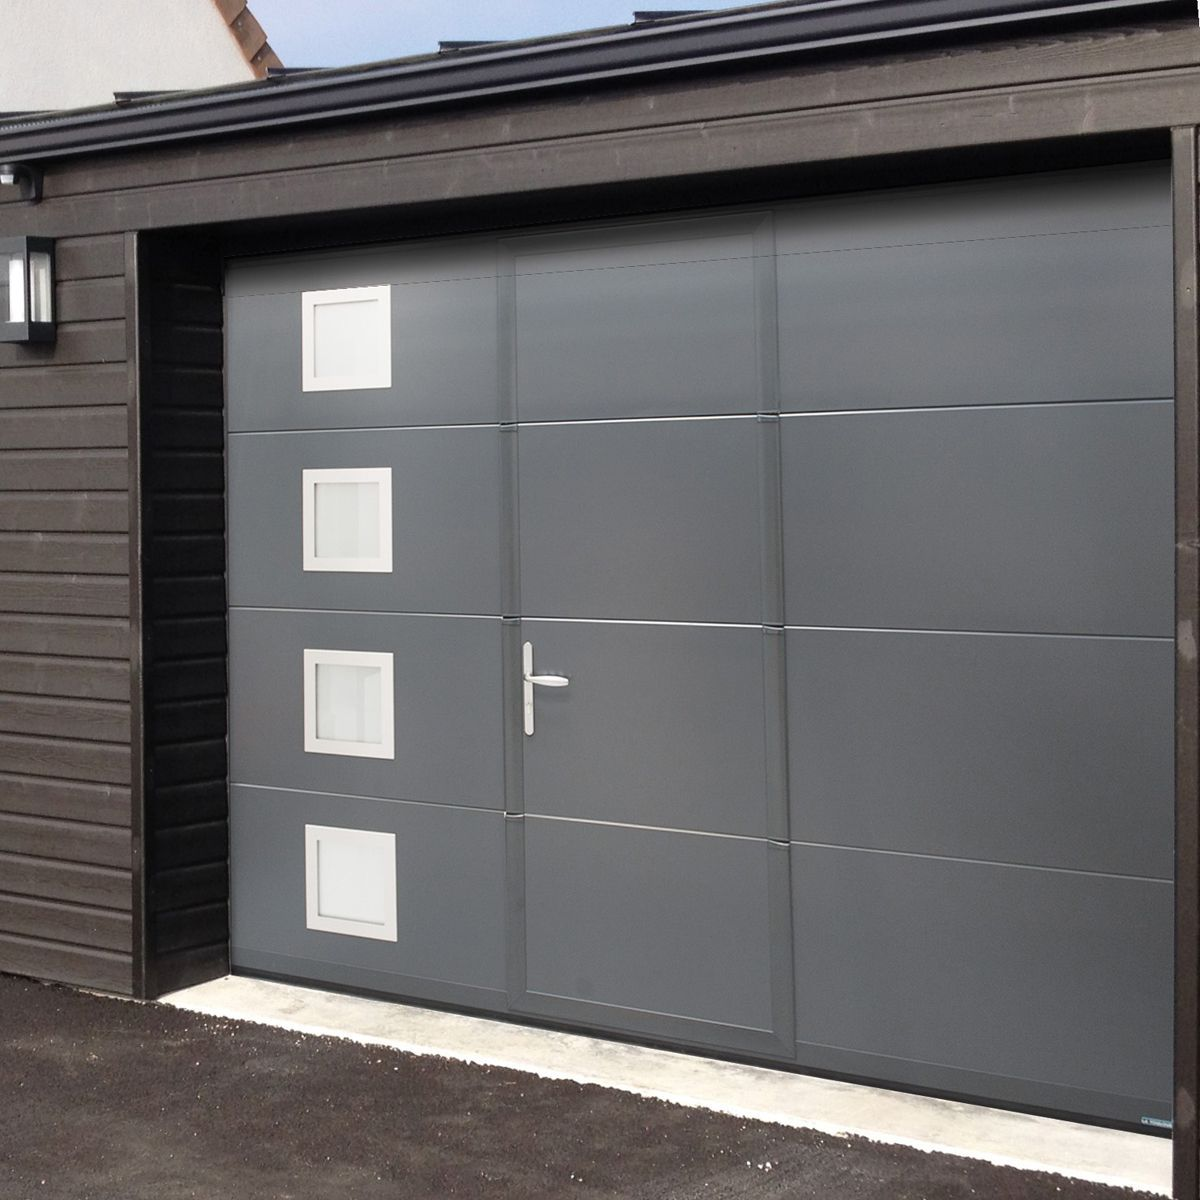 Portes de garage fabriqu es en france sur mesure isoferm for Porte de garage enroulable isolante